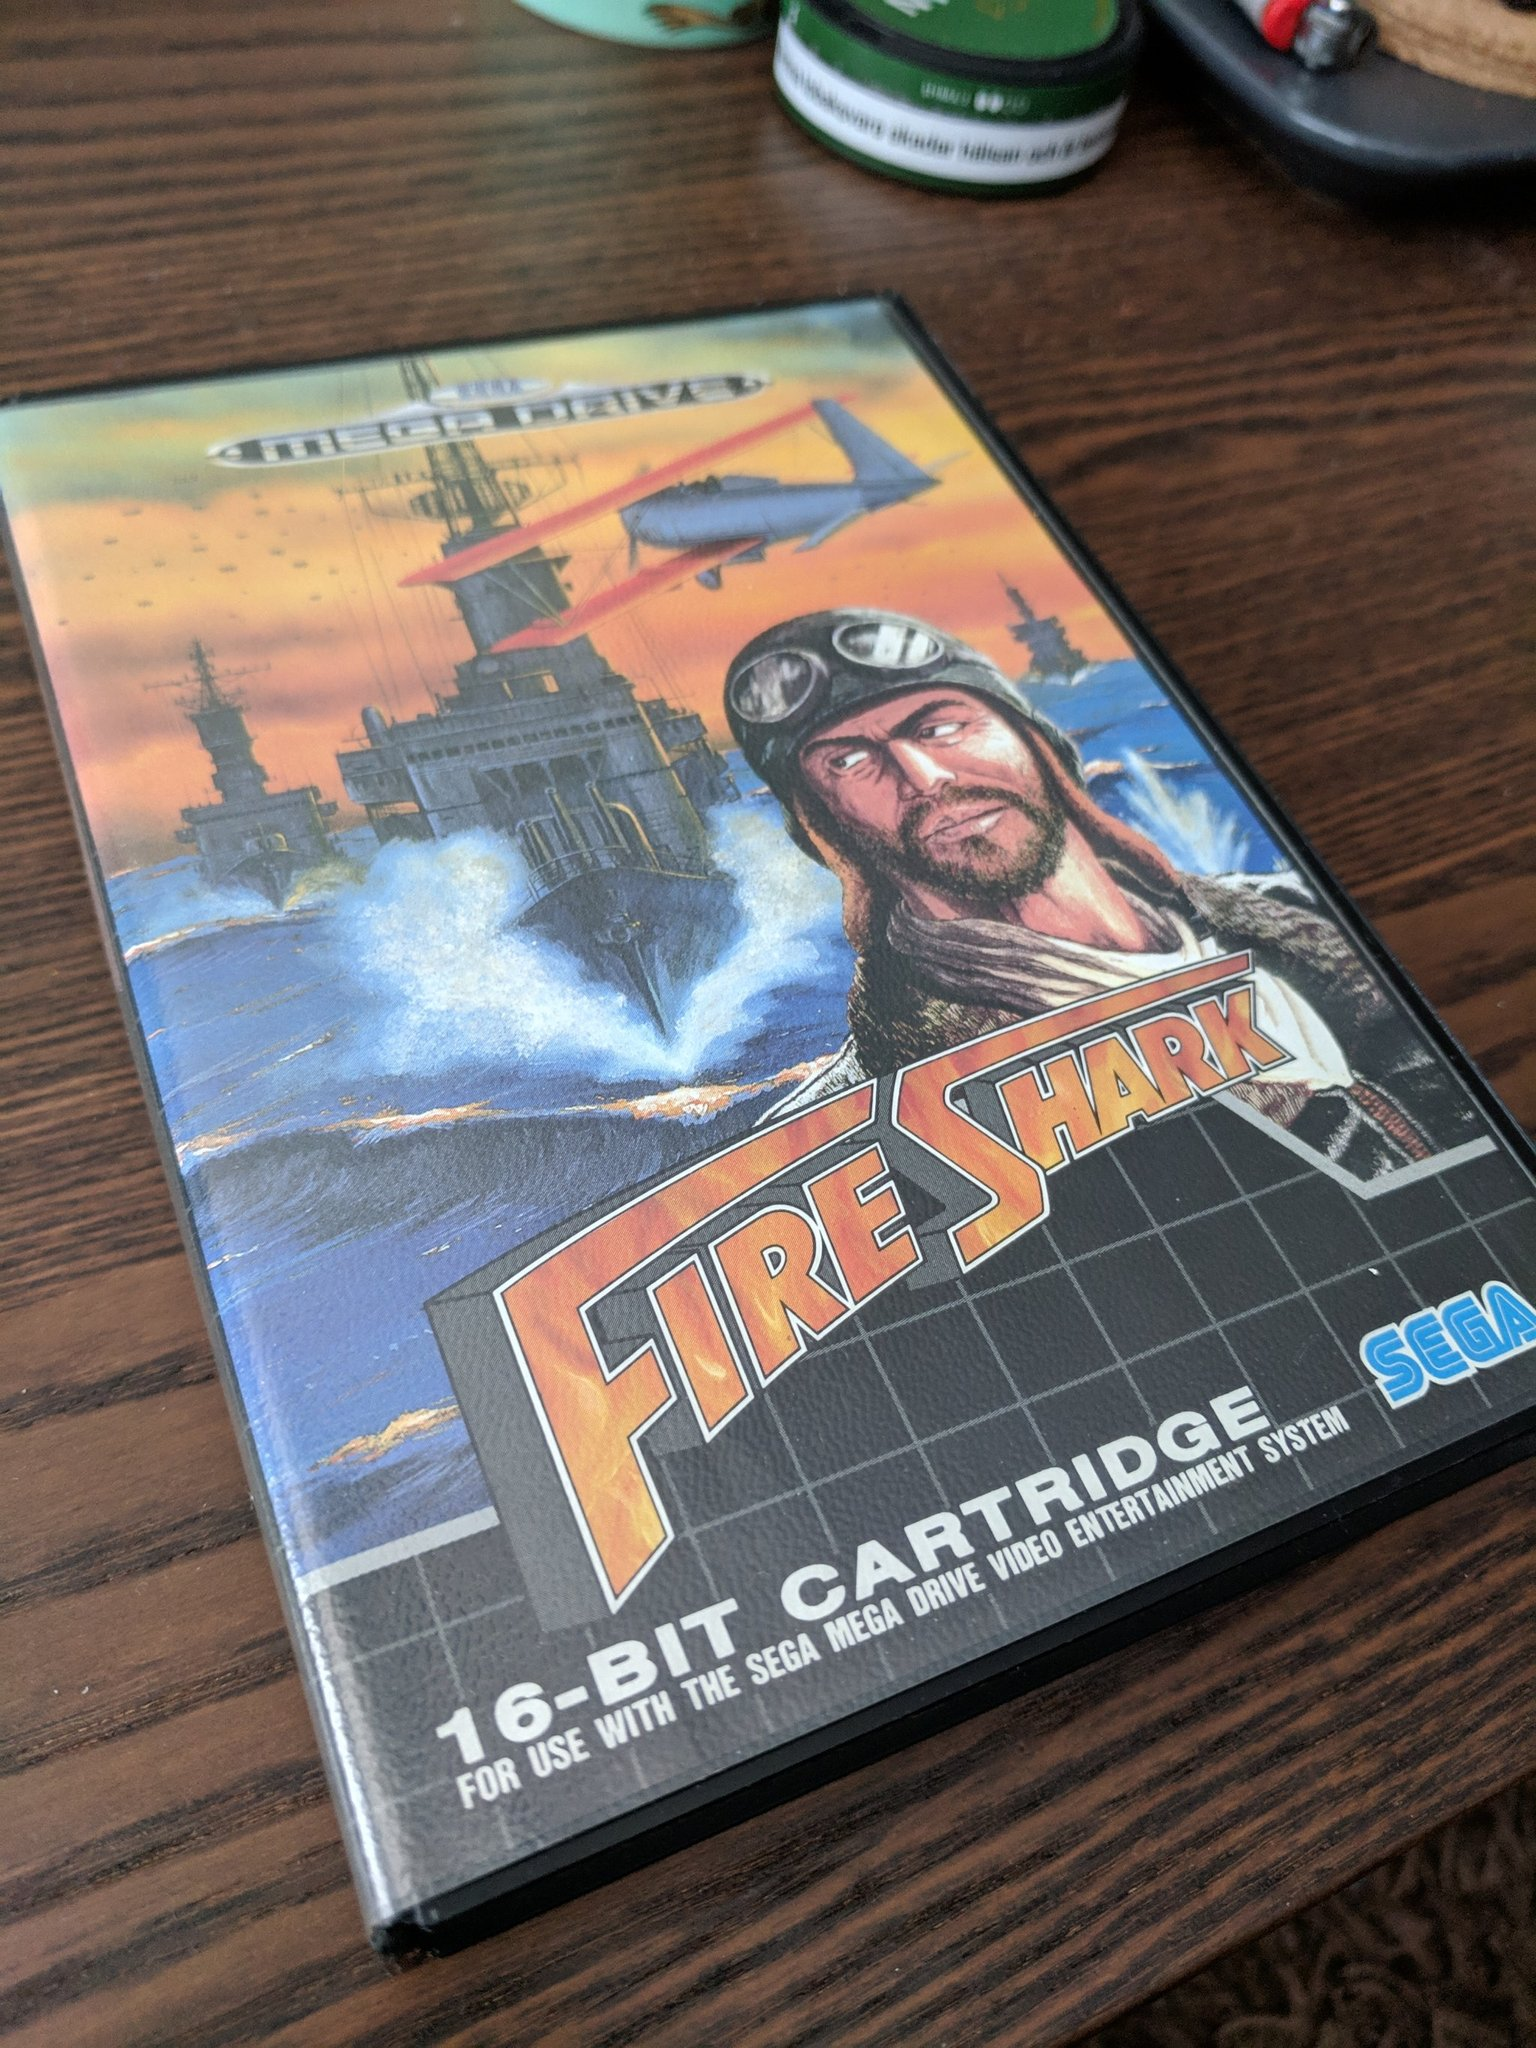 Fire Shark (shmup, PAL)